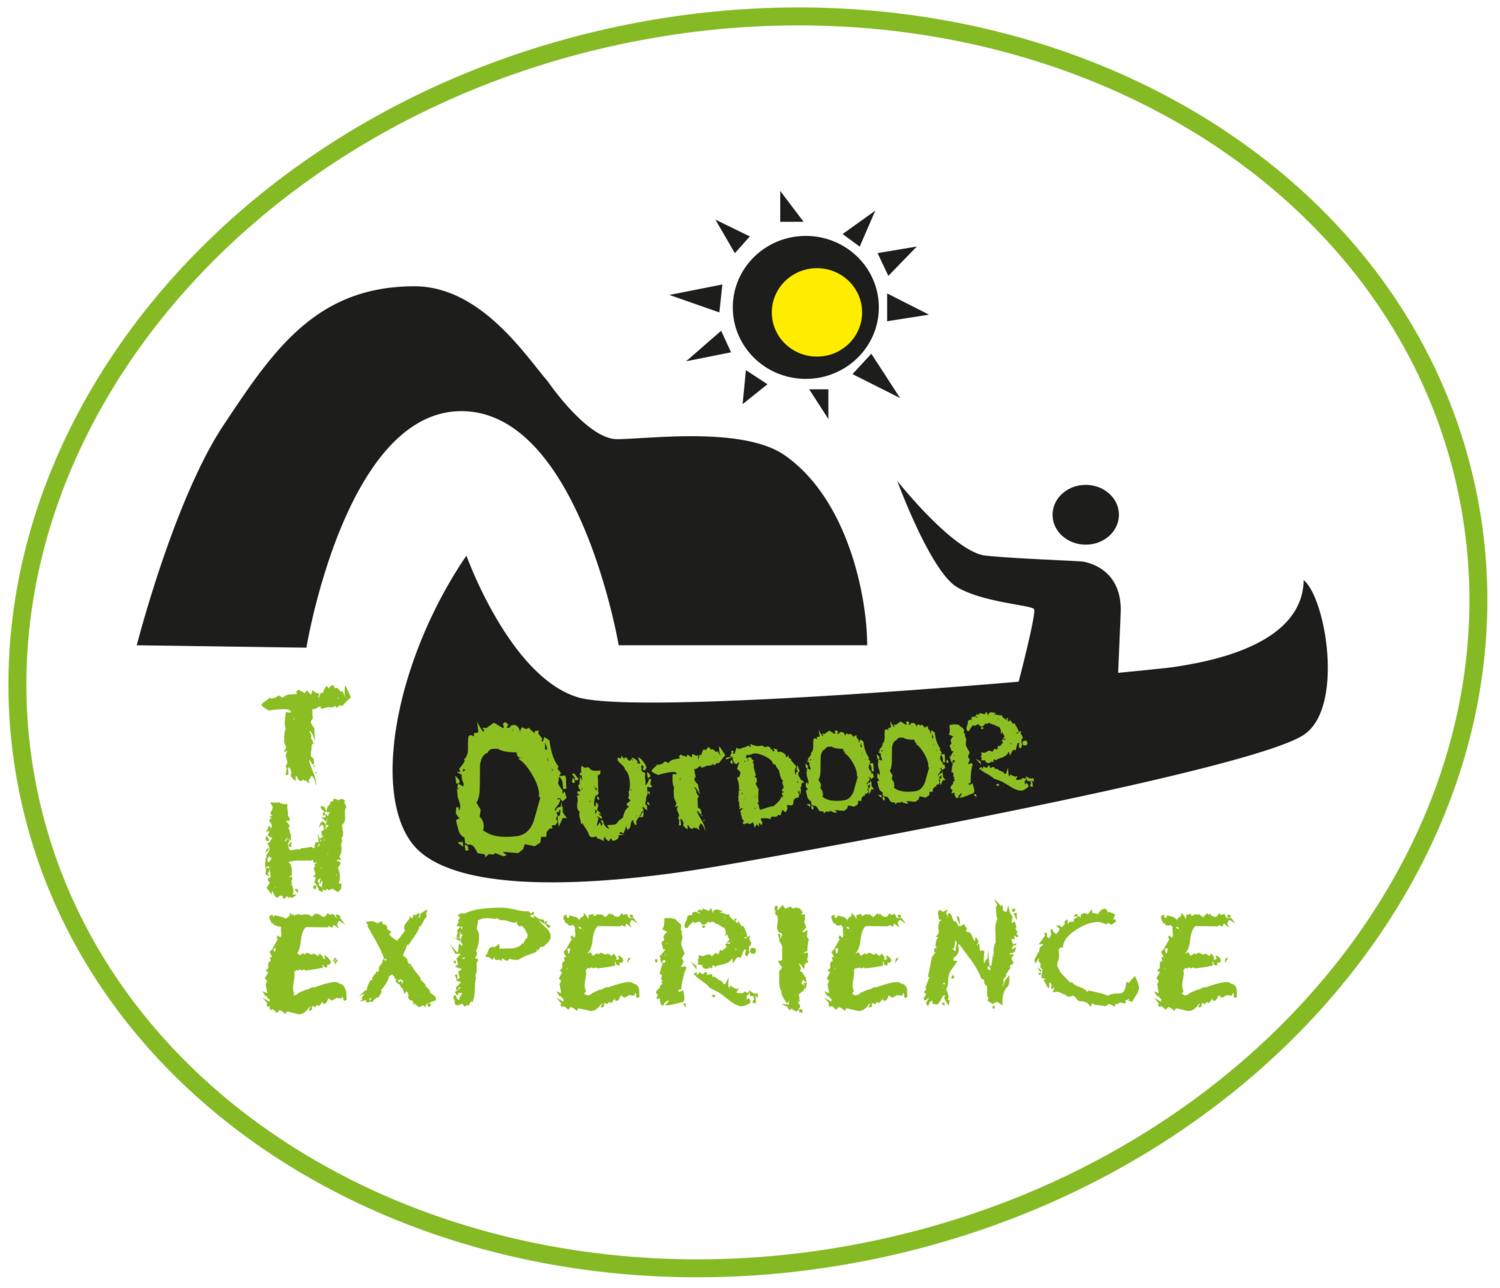 The Outdoor Experience - Ardeche Activity Holiday - Ardeche Canoe Guides